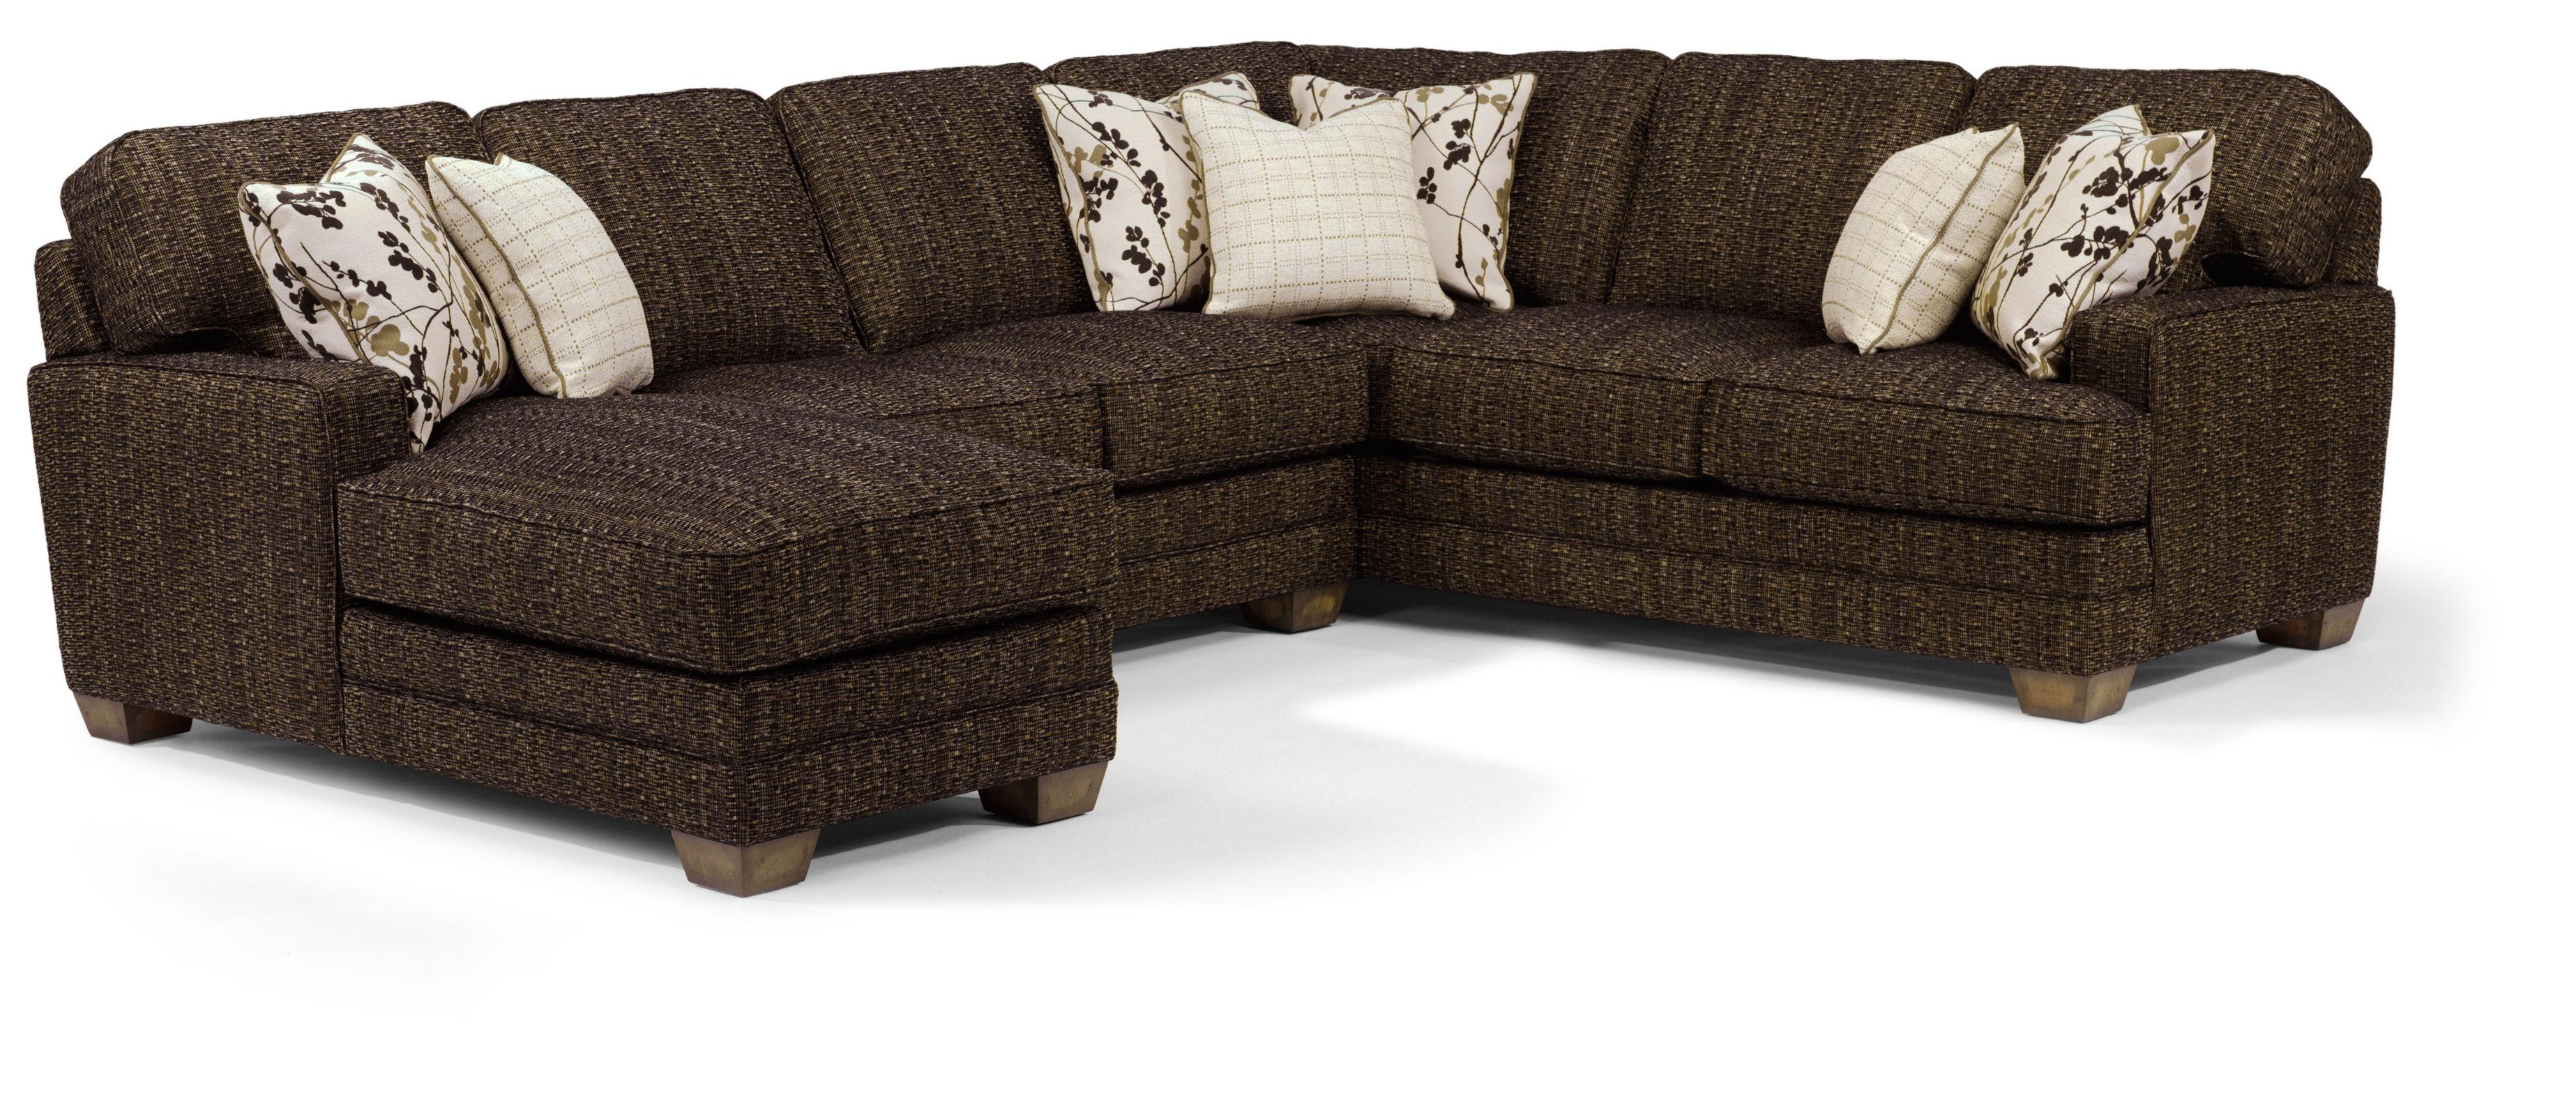 Delano 2 Piece Sectionals With Raf Oversized Chaise For Newest Flexsteel That's My Style <b>customizable</b> 3 Piece Sectional Sofa (View 12 of 20)